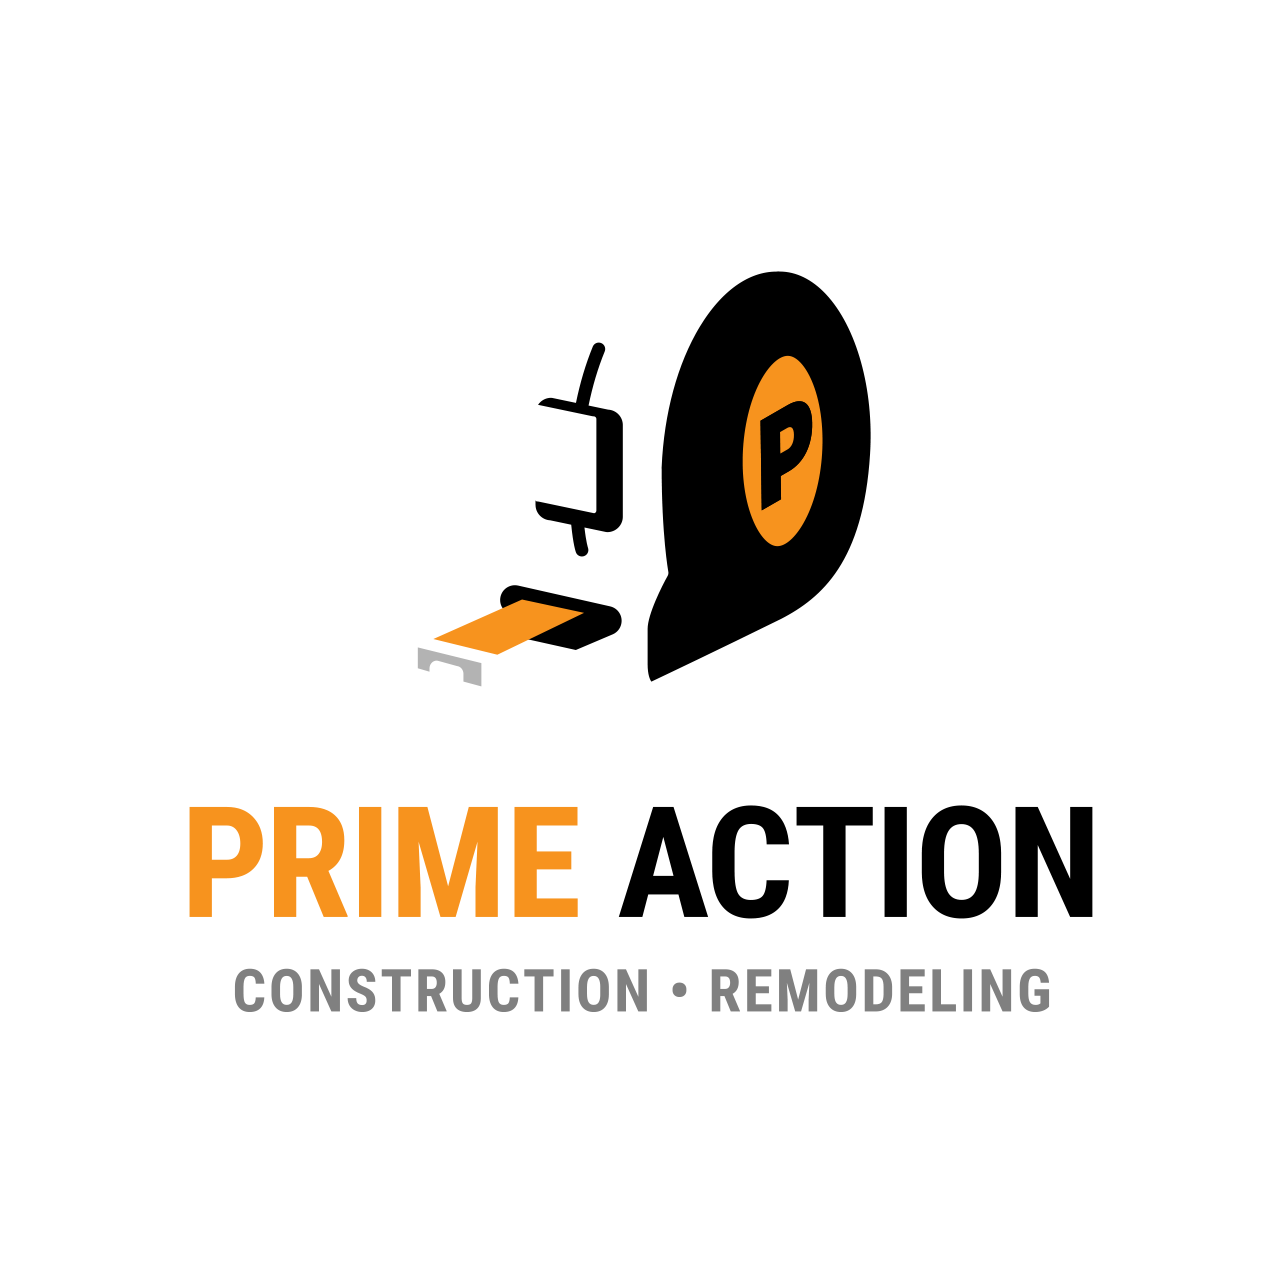 Prime Action Remodeling Inc